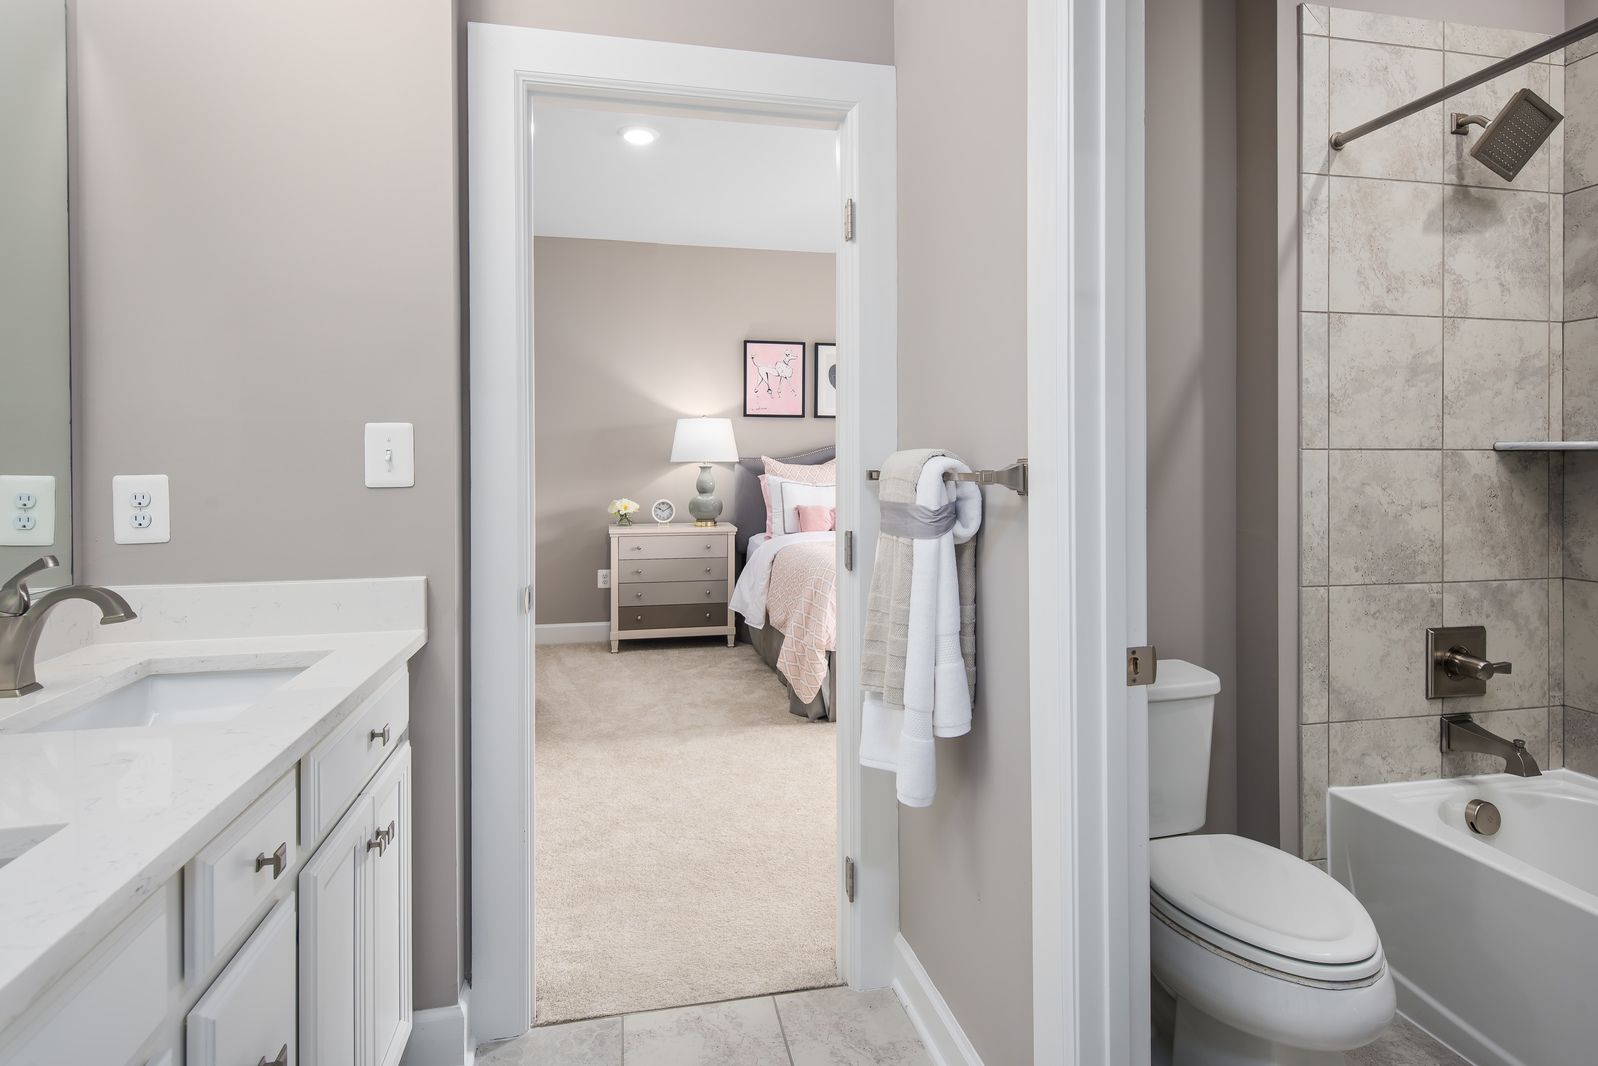 Bathroom featured in the Longwood By NVHomes in Philadelphia, PA